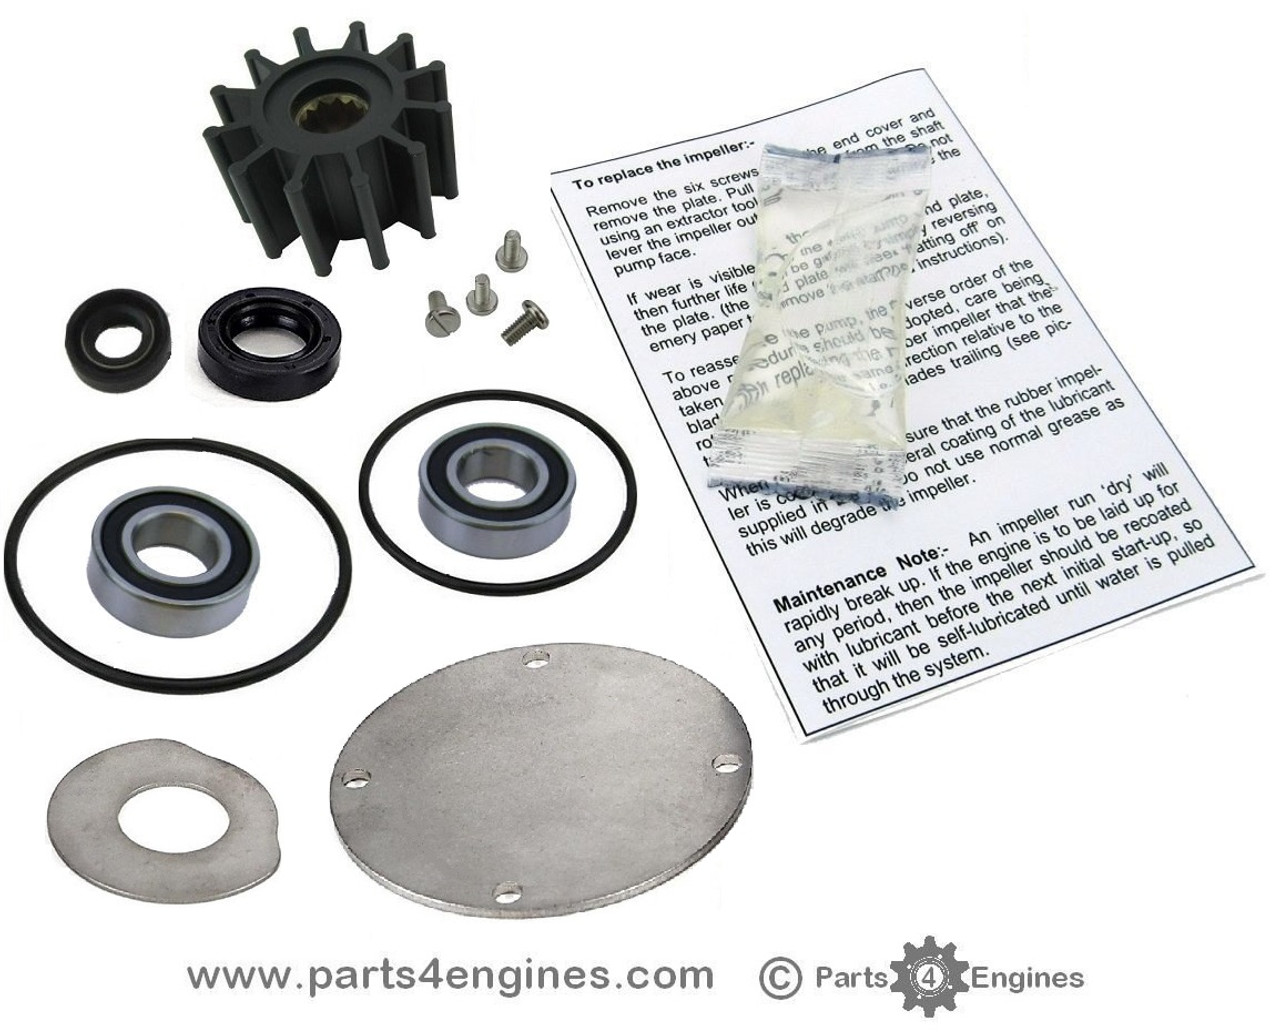 Volvo Penta D2-55 Raw water pump rebuild kit - parts4engines.com